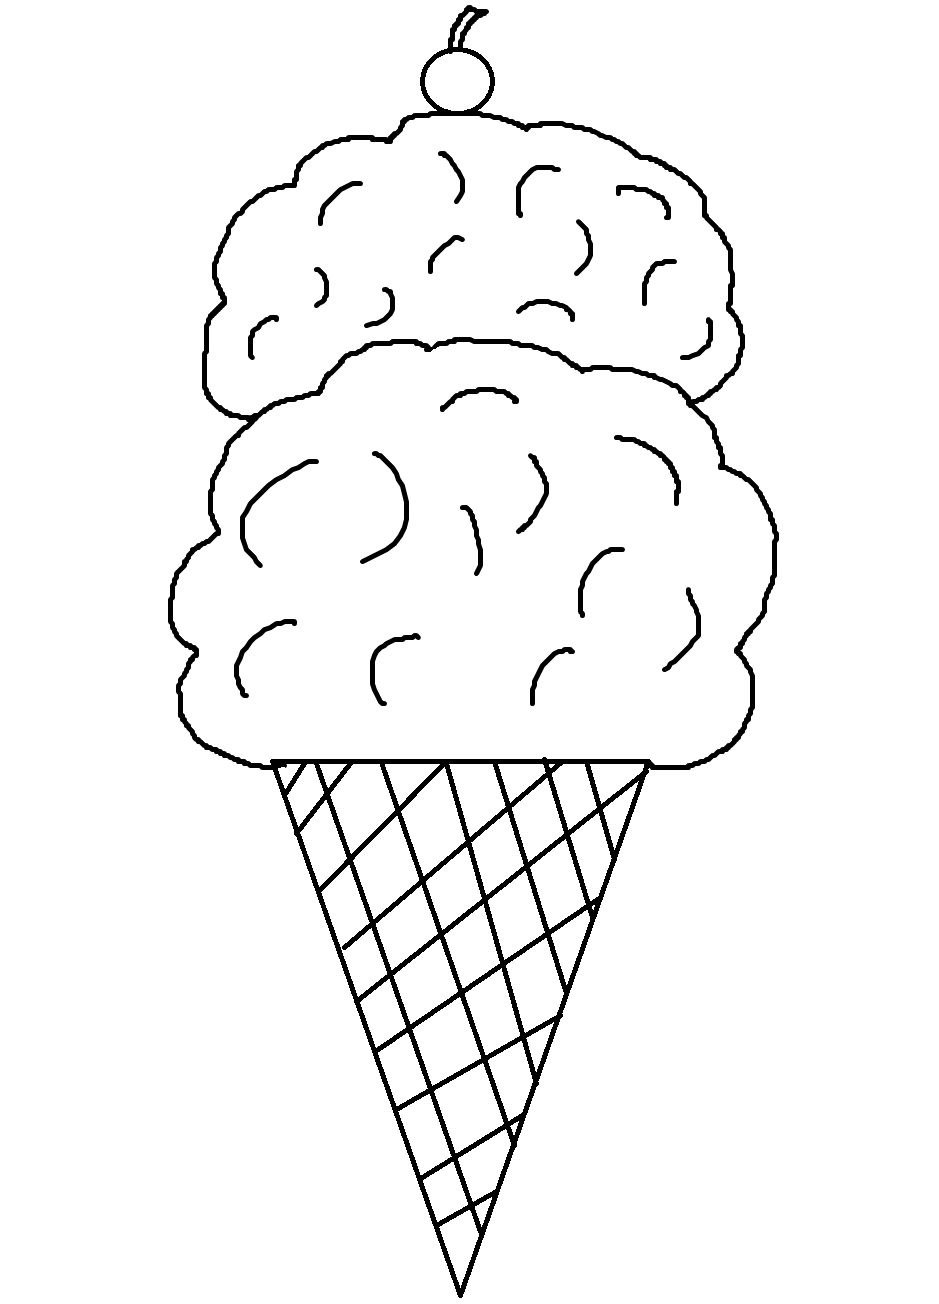 Printable Ice Cream Cone Coloring